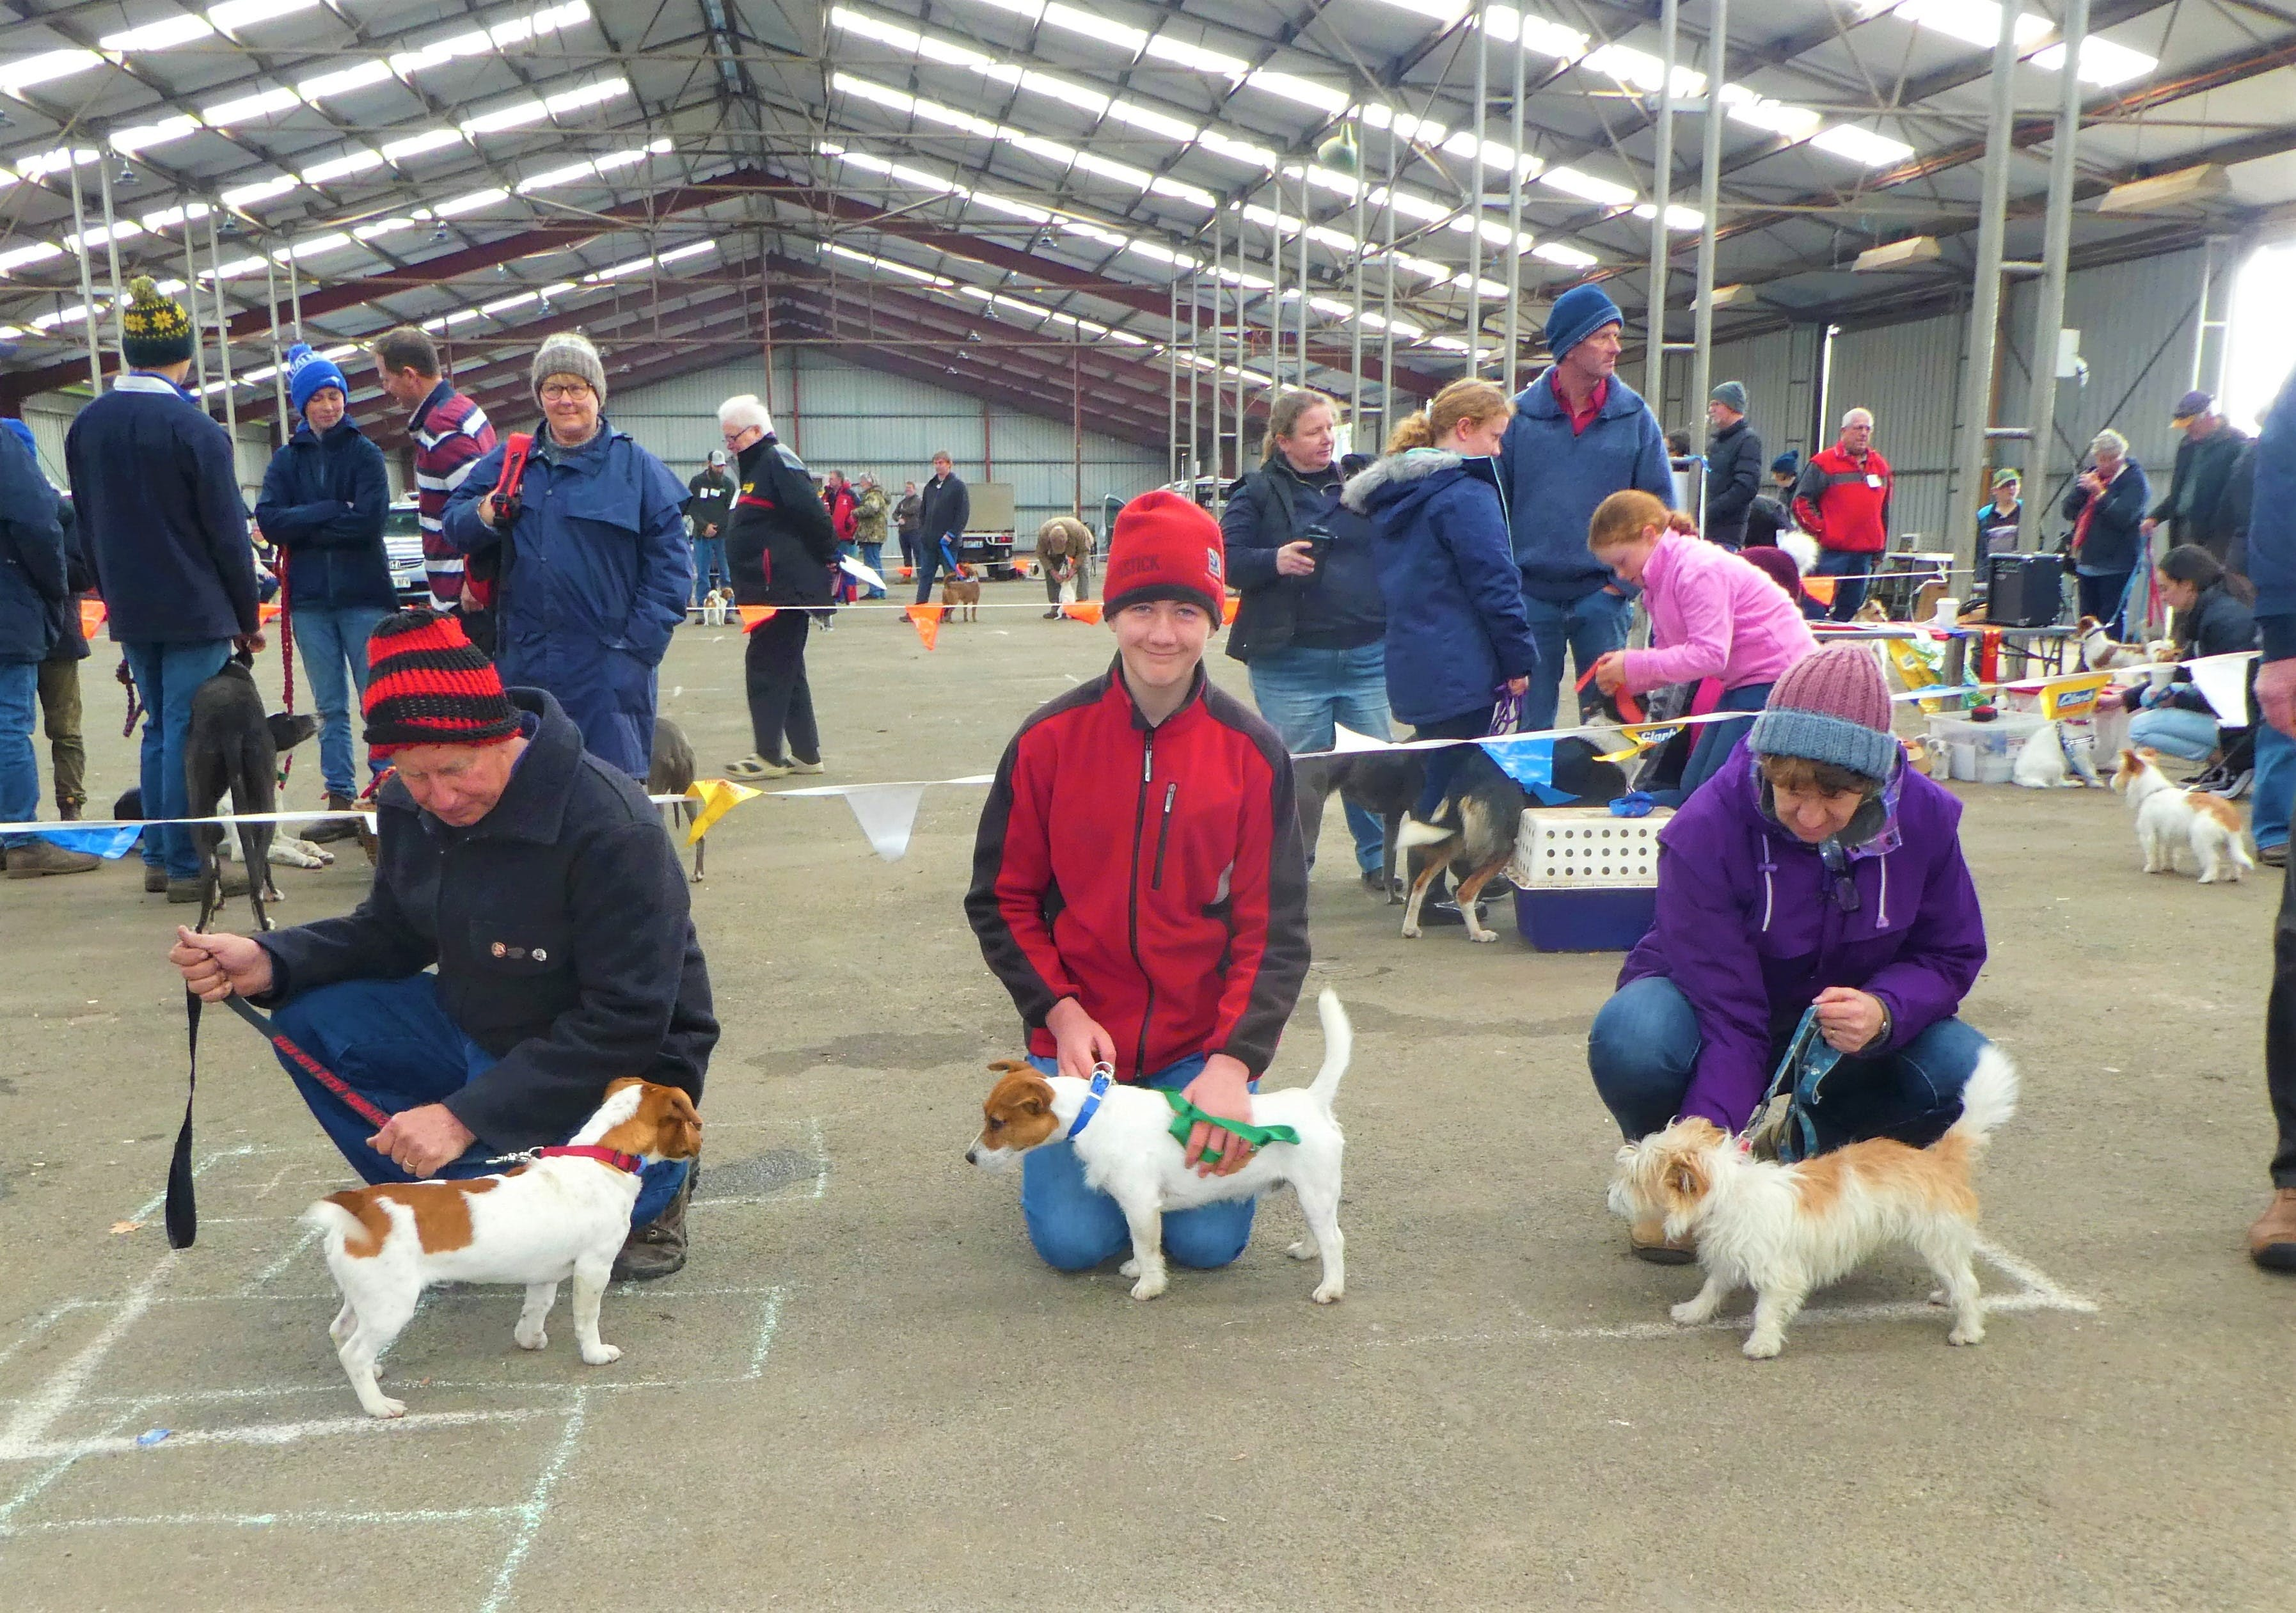 Hamilton Jack Russell Terrier and Hunting Dog Show - Accommodation Search